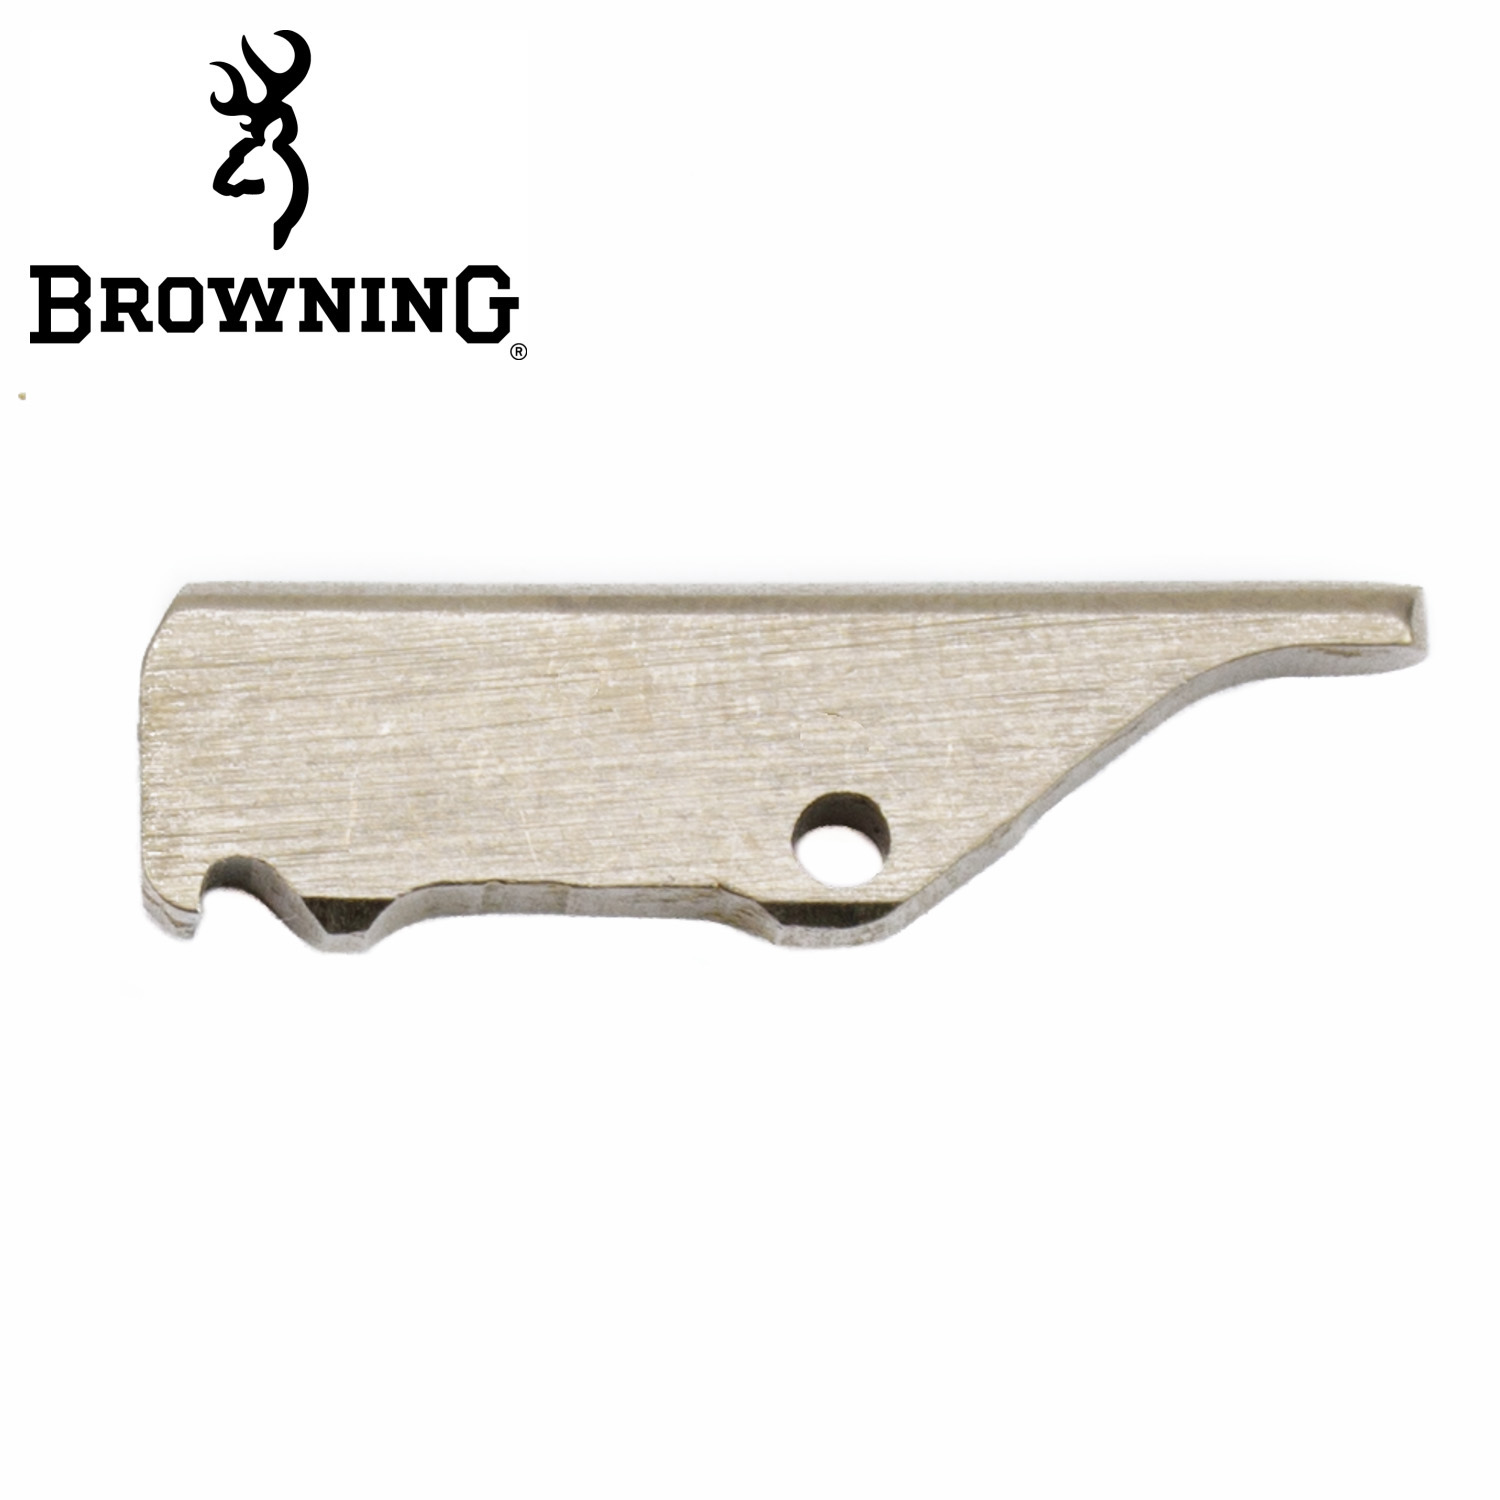 Browning Hi-Power 9mm Extractor, R-N-SC-L: MGW